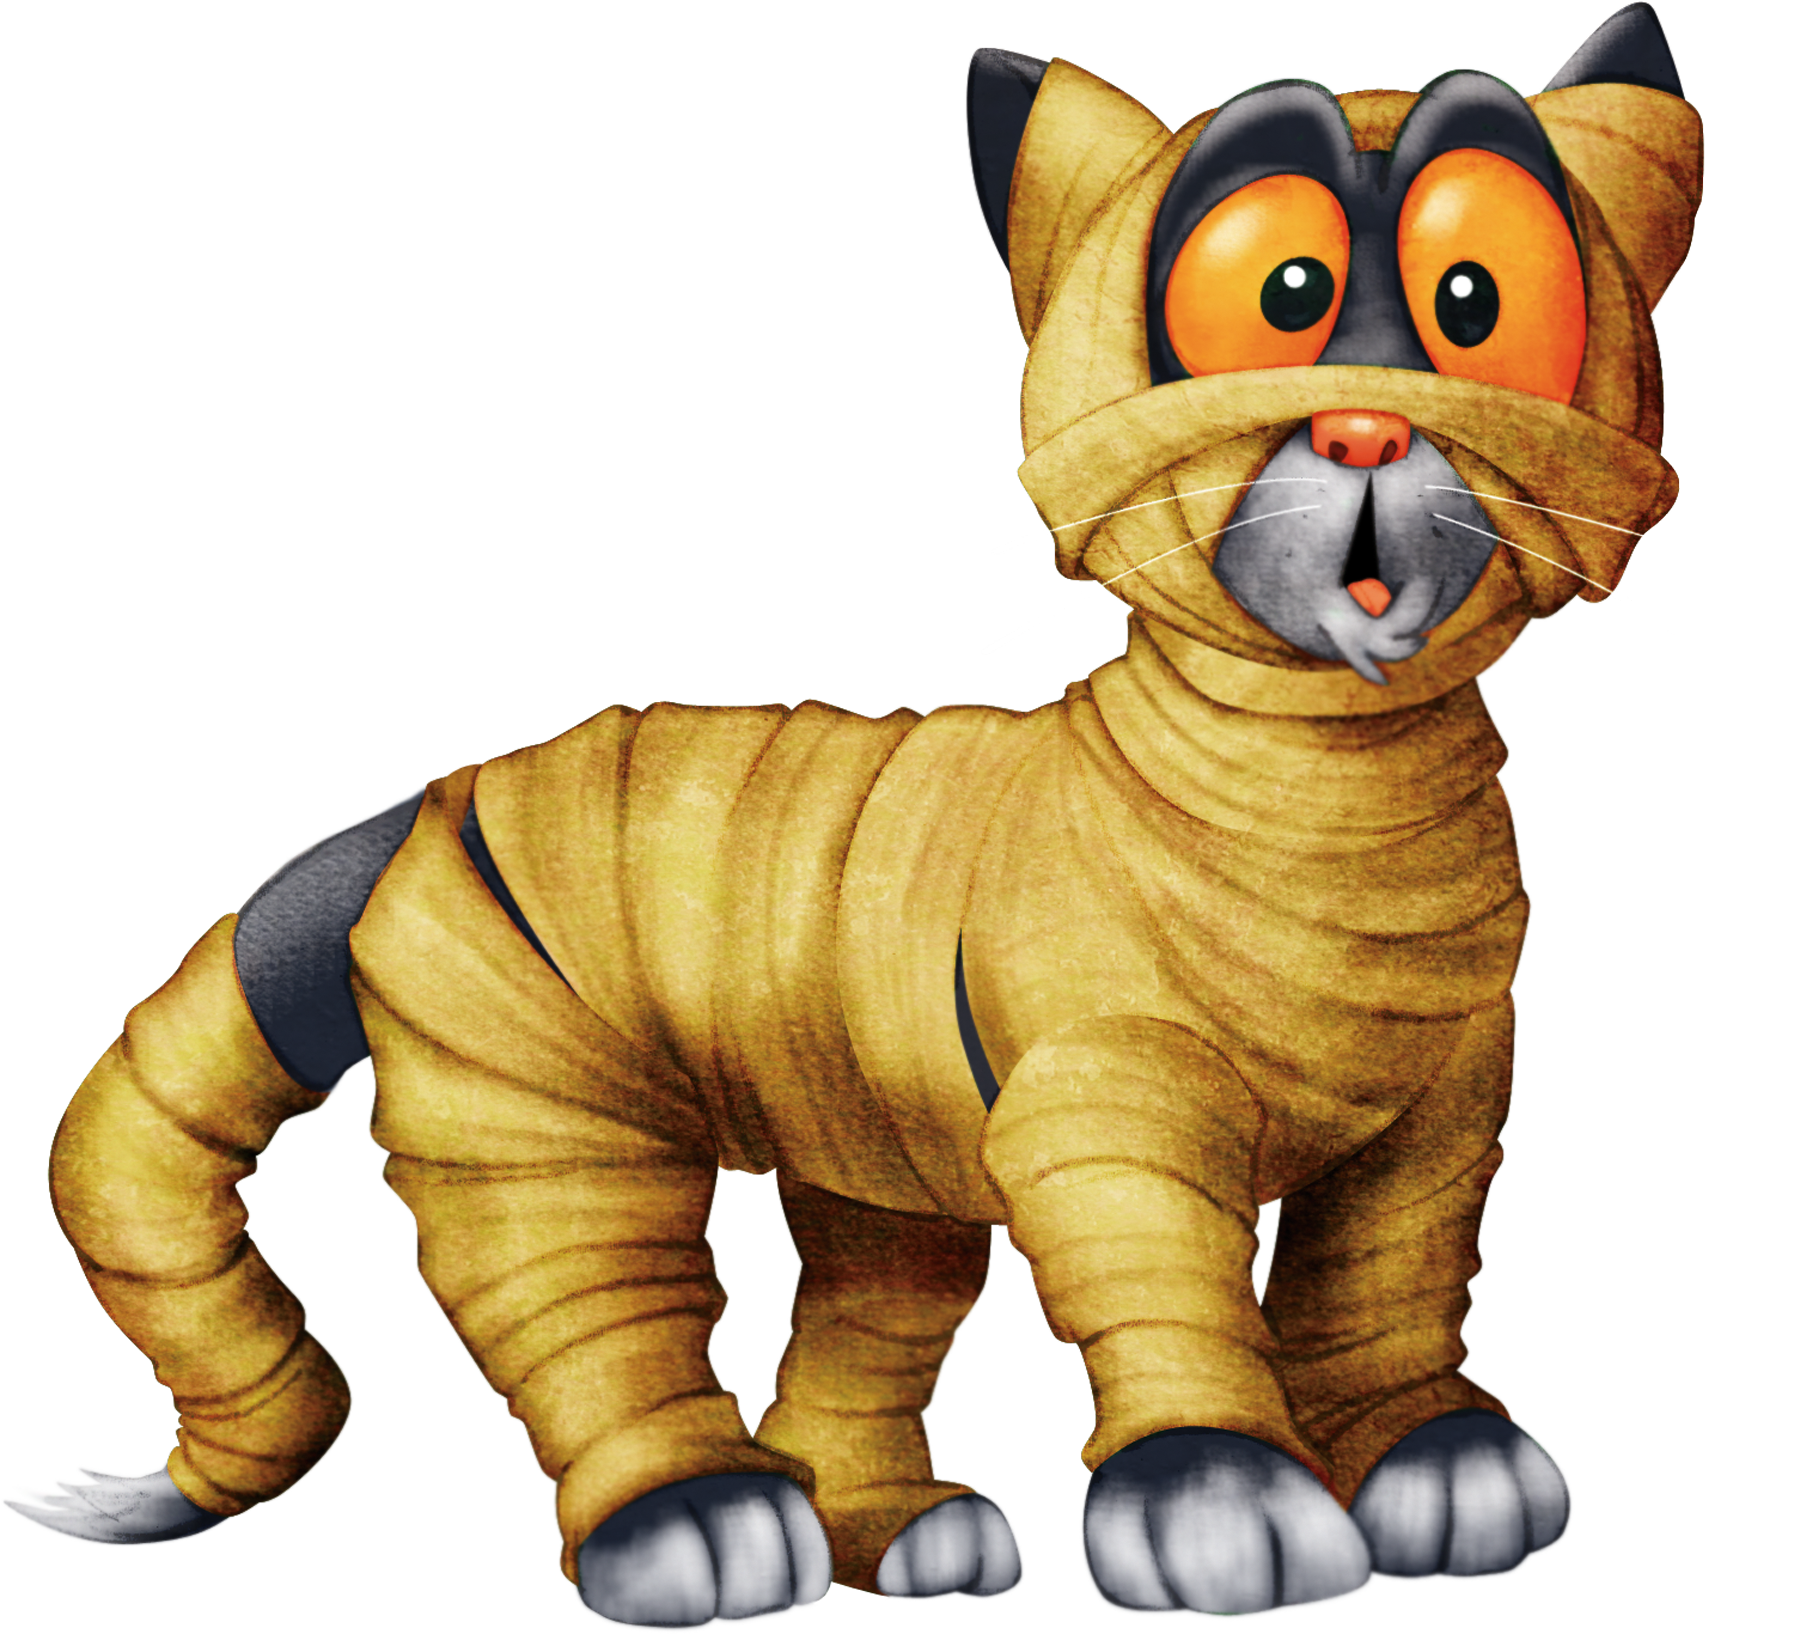 Egypt vbs clipart png freeuse download Egypt clipart vbs, Egypt vbs Transparent FREE for download on ... png freeuse download